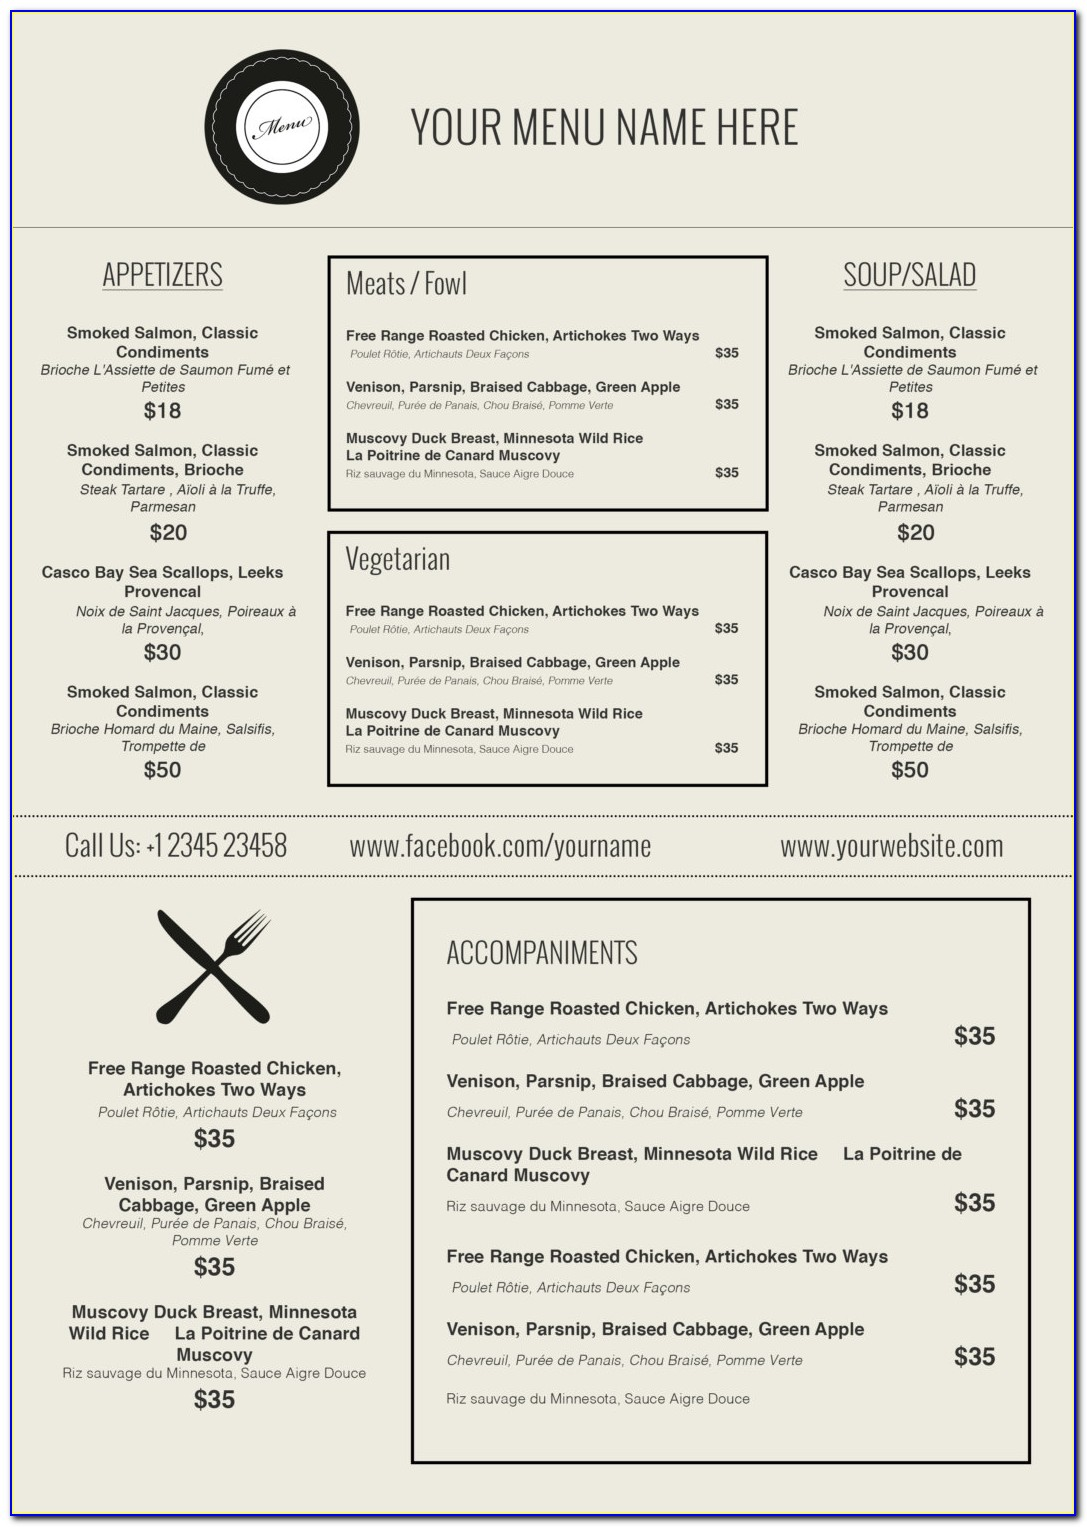 Restaurant Menu Layout Free Download